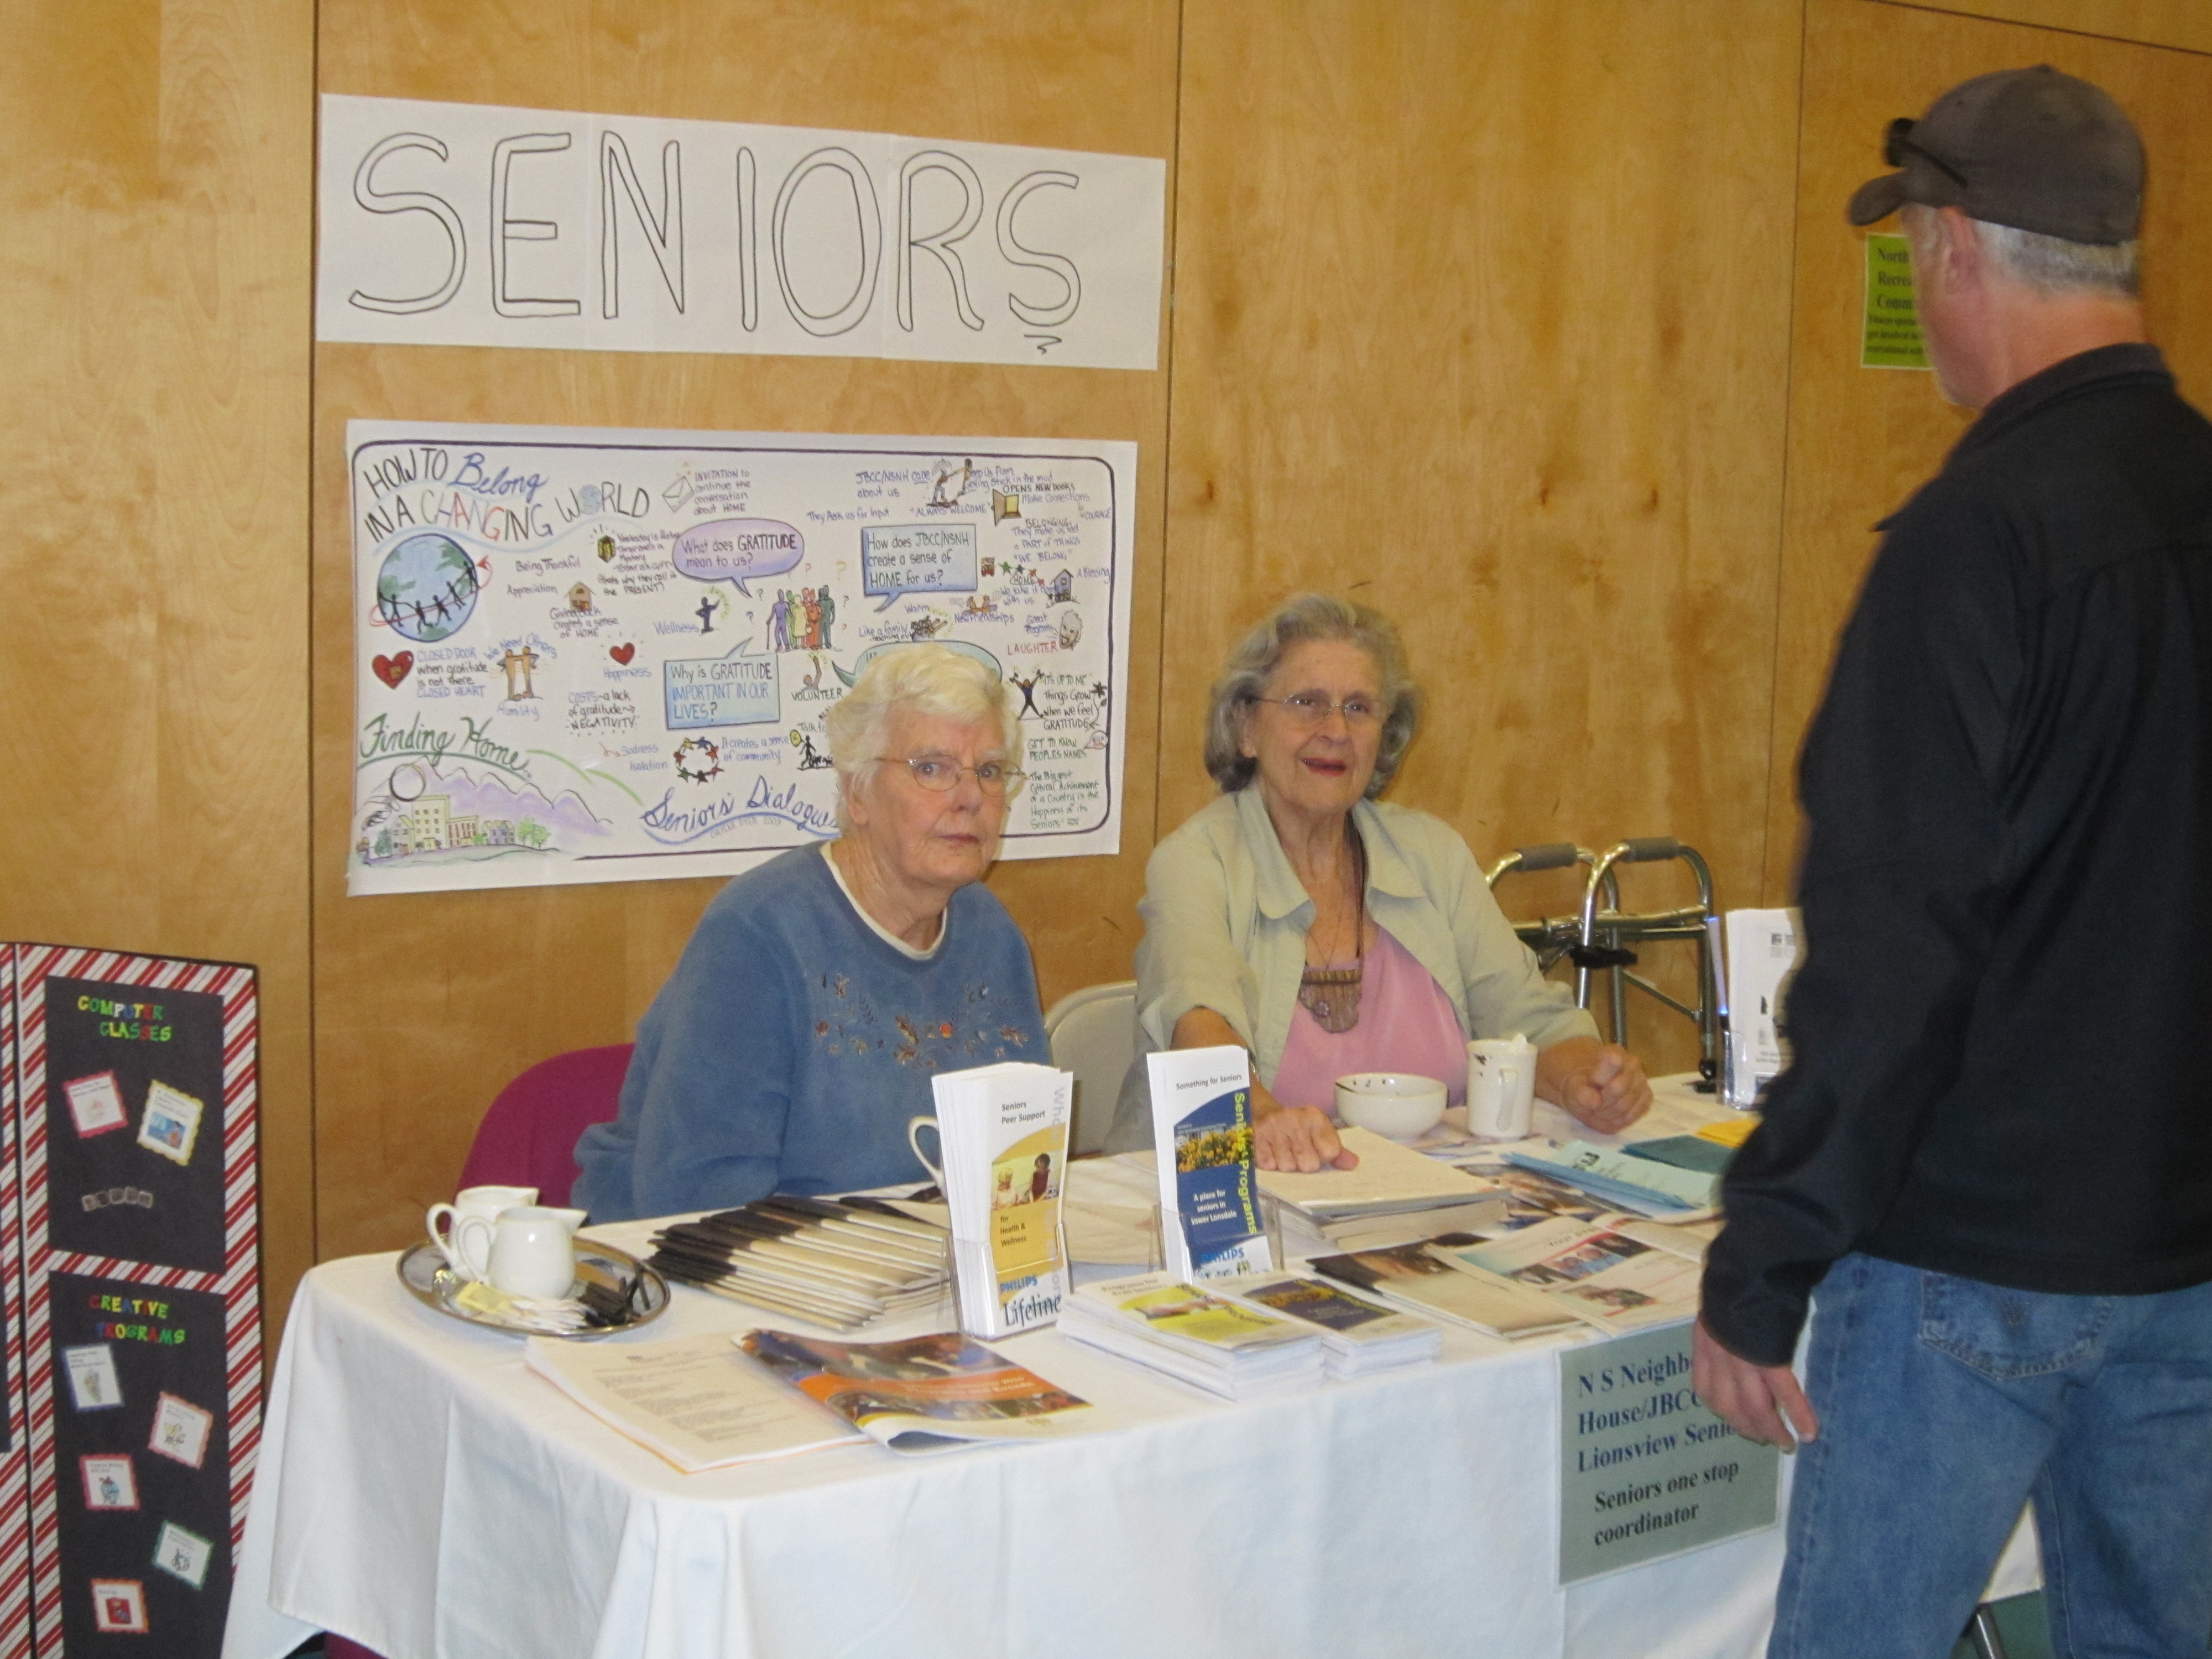 Resources for Seniors at Homeless Connect